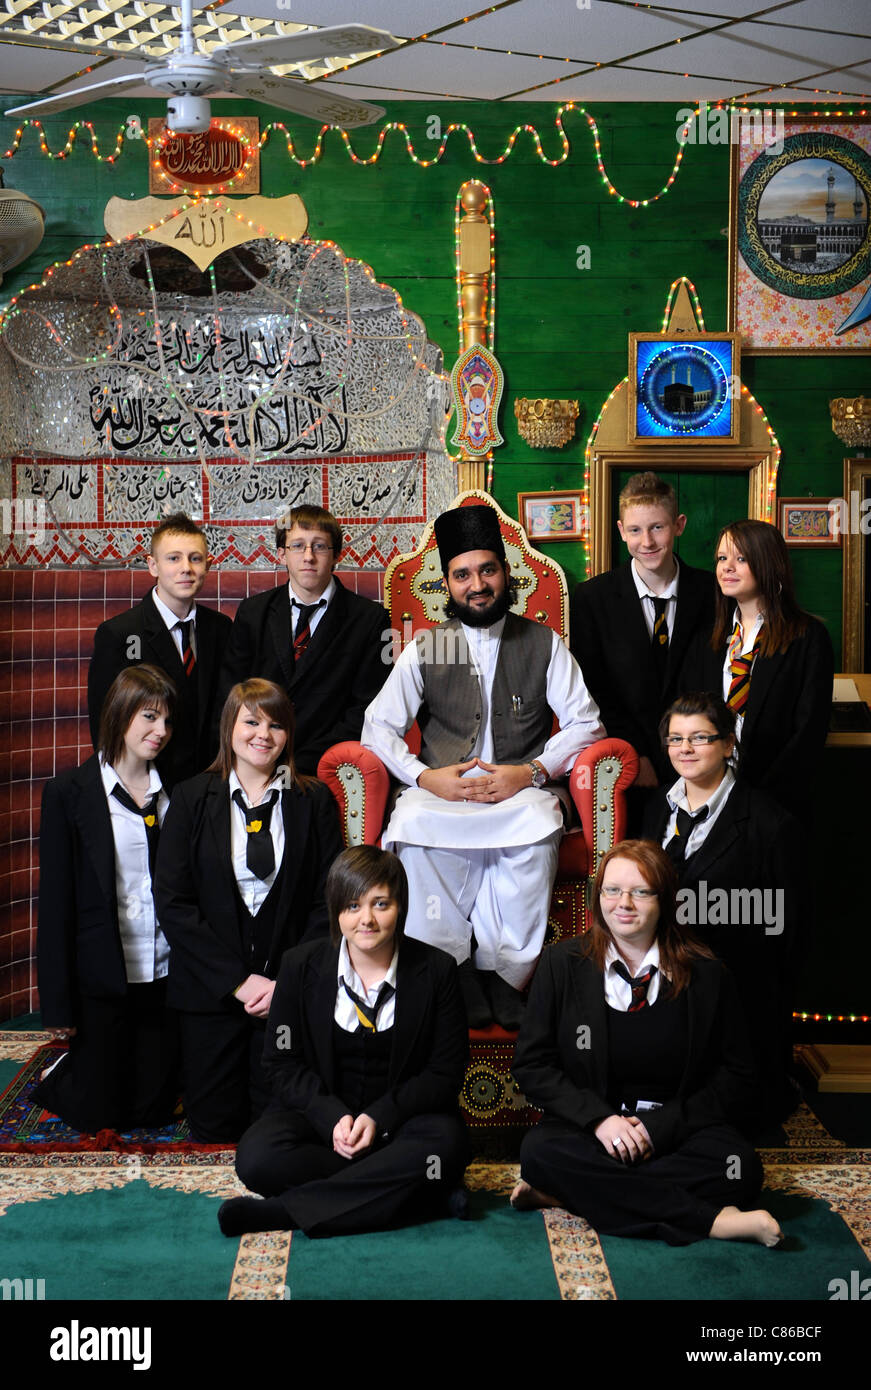 Children from Mitchell High School, Stoke-on-Trent with Sheik Hanif at Tunstall Mosque, during a Community Cohesion - Stock Image